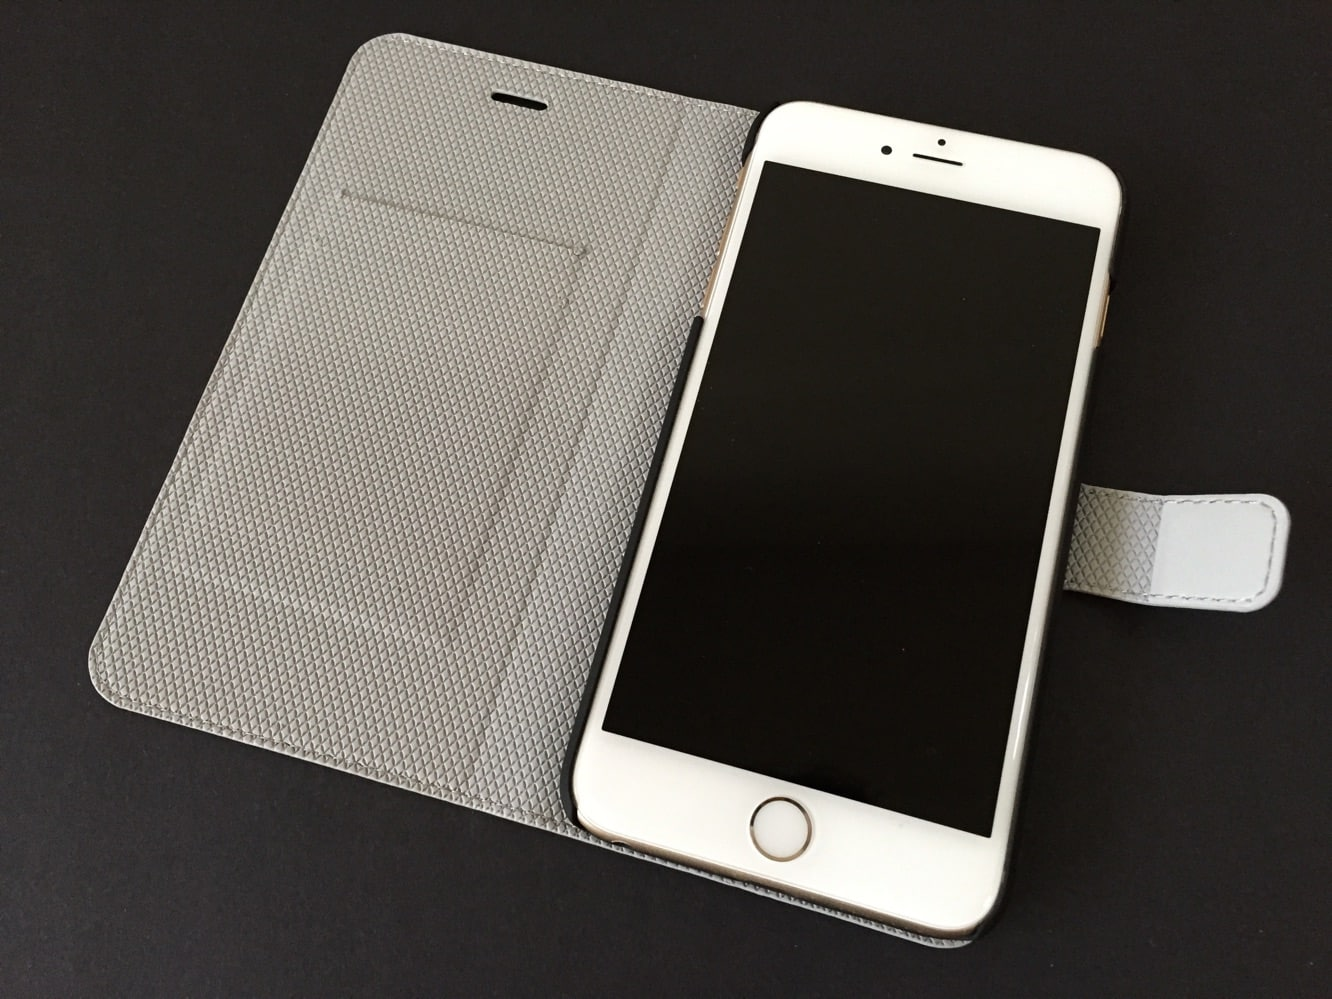 Review: Chil Attraction Jacket for iPhone 6 and iPhone 6 Plus